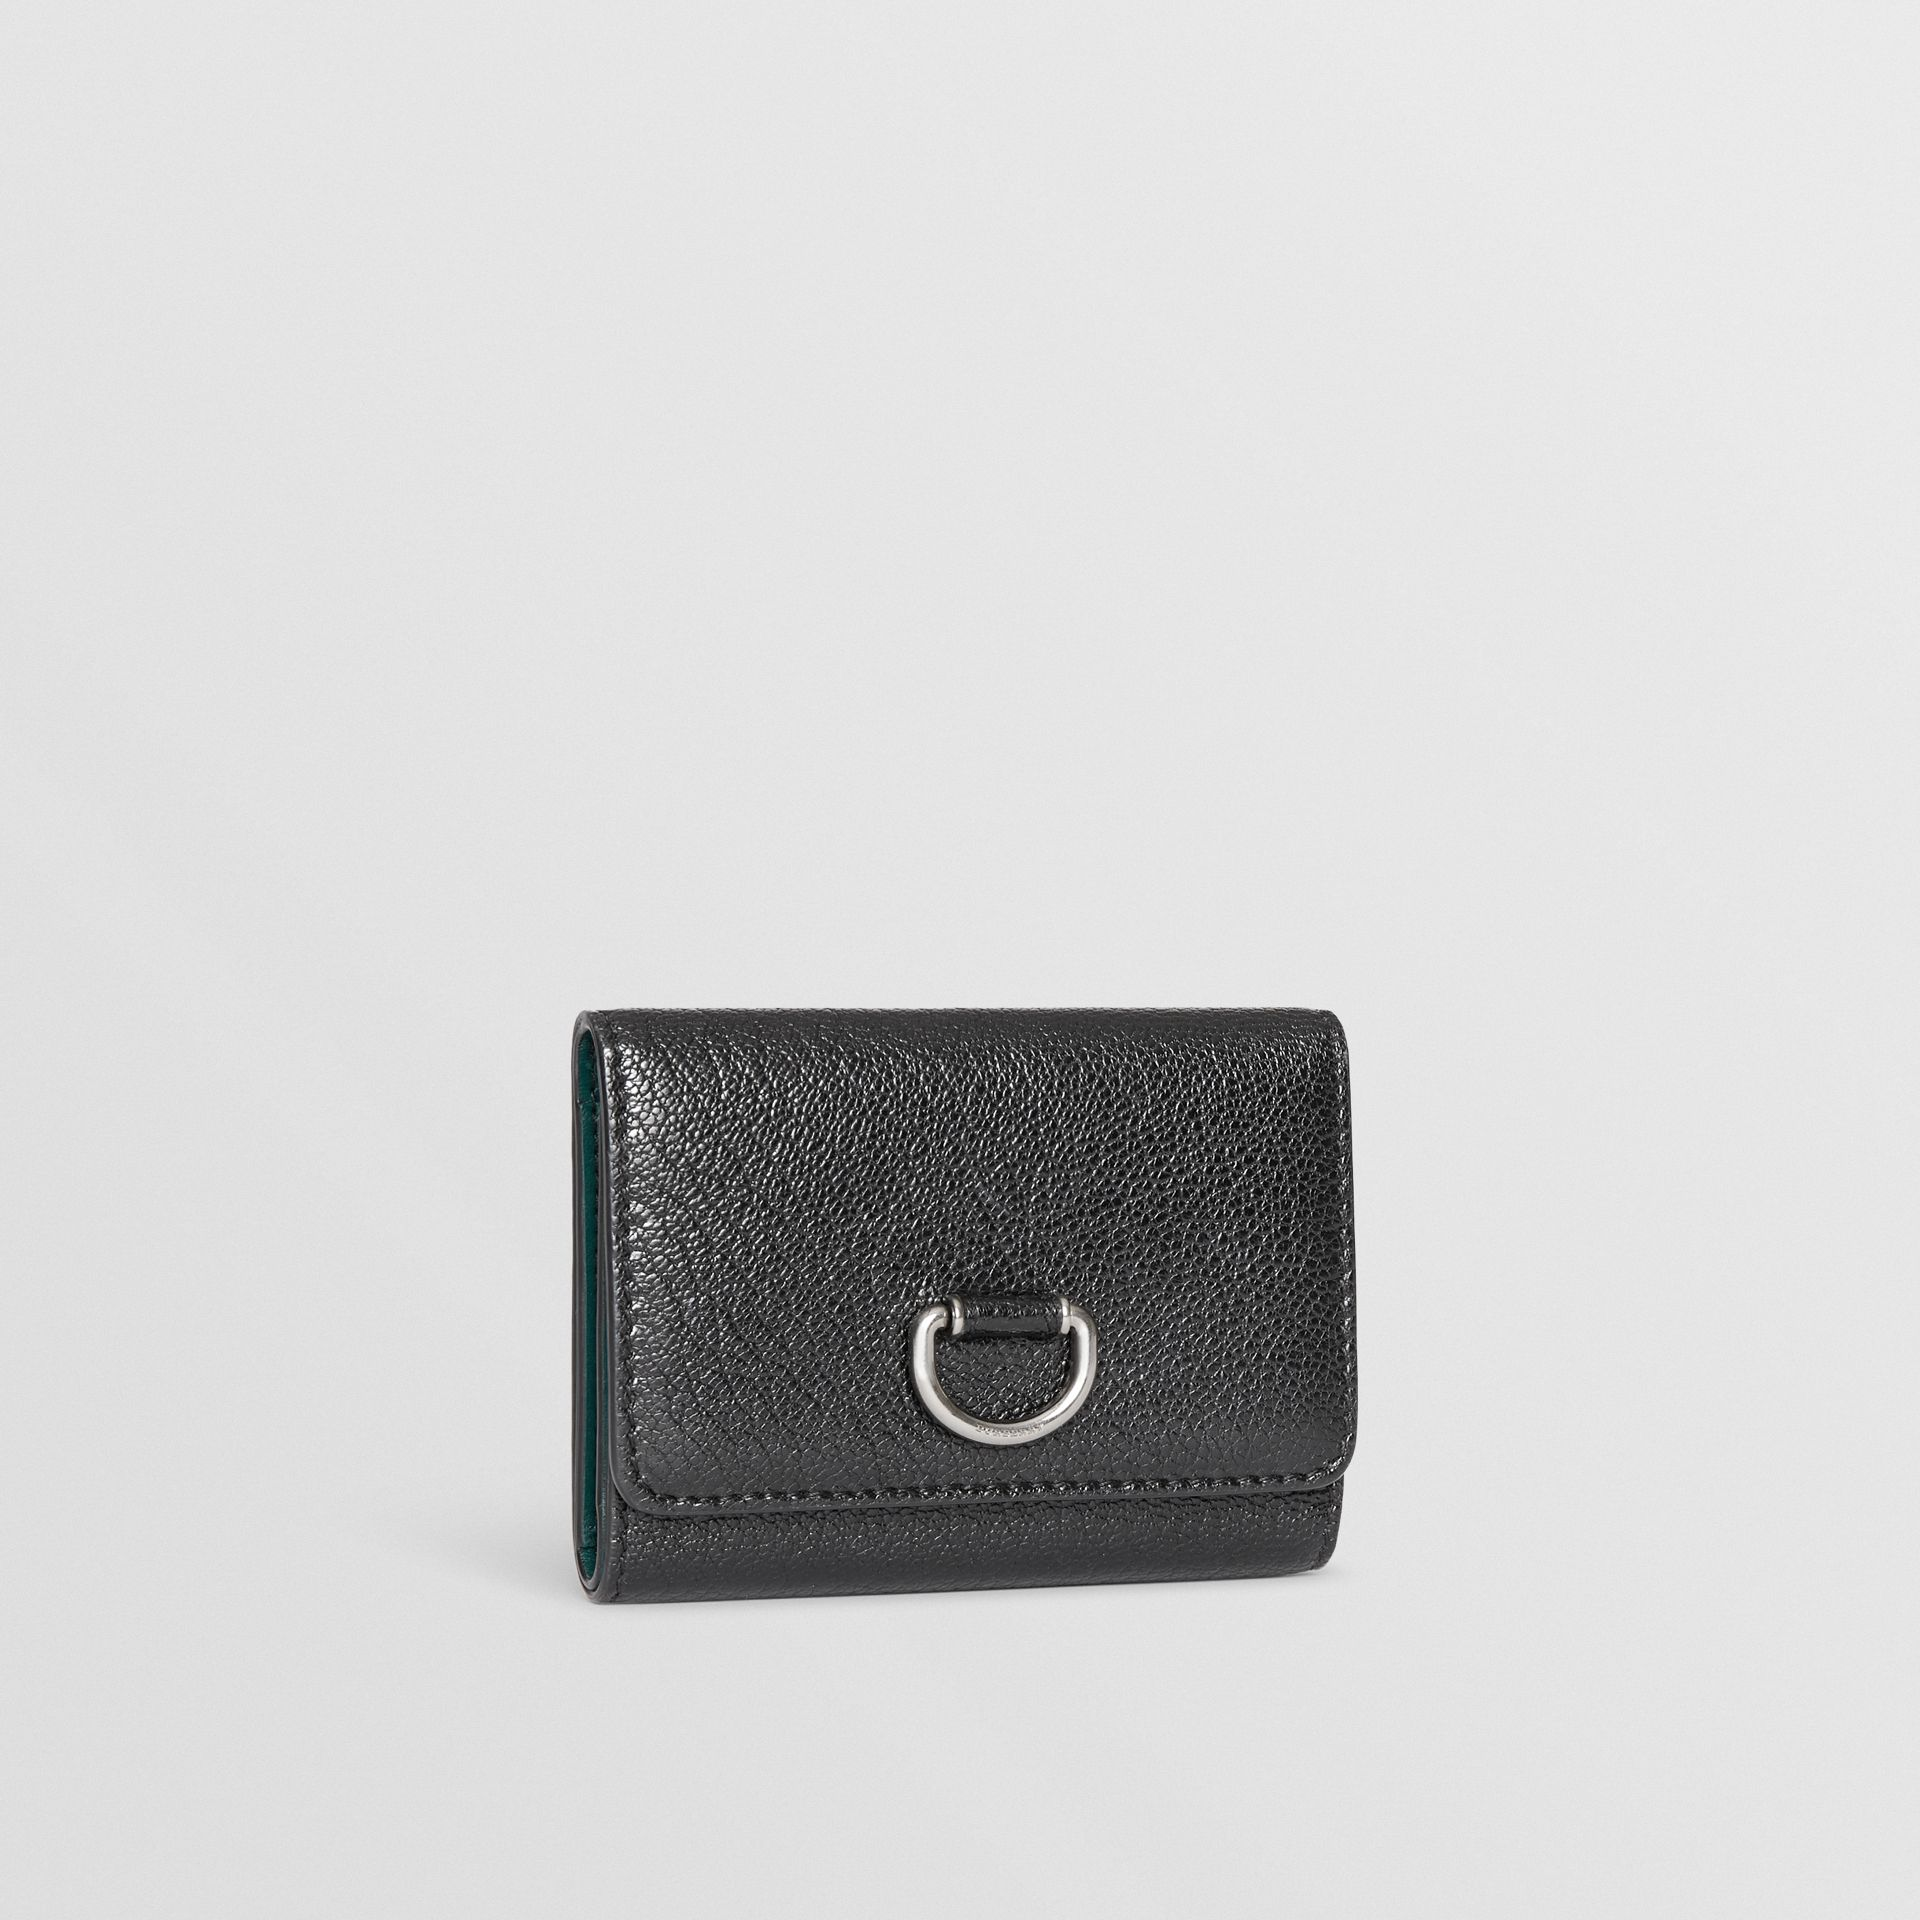 Small D-ring Leather Wallet in Black - Women | Burberry Canada - gallery image 3